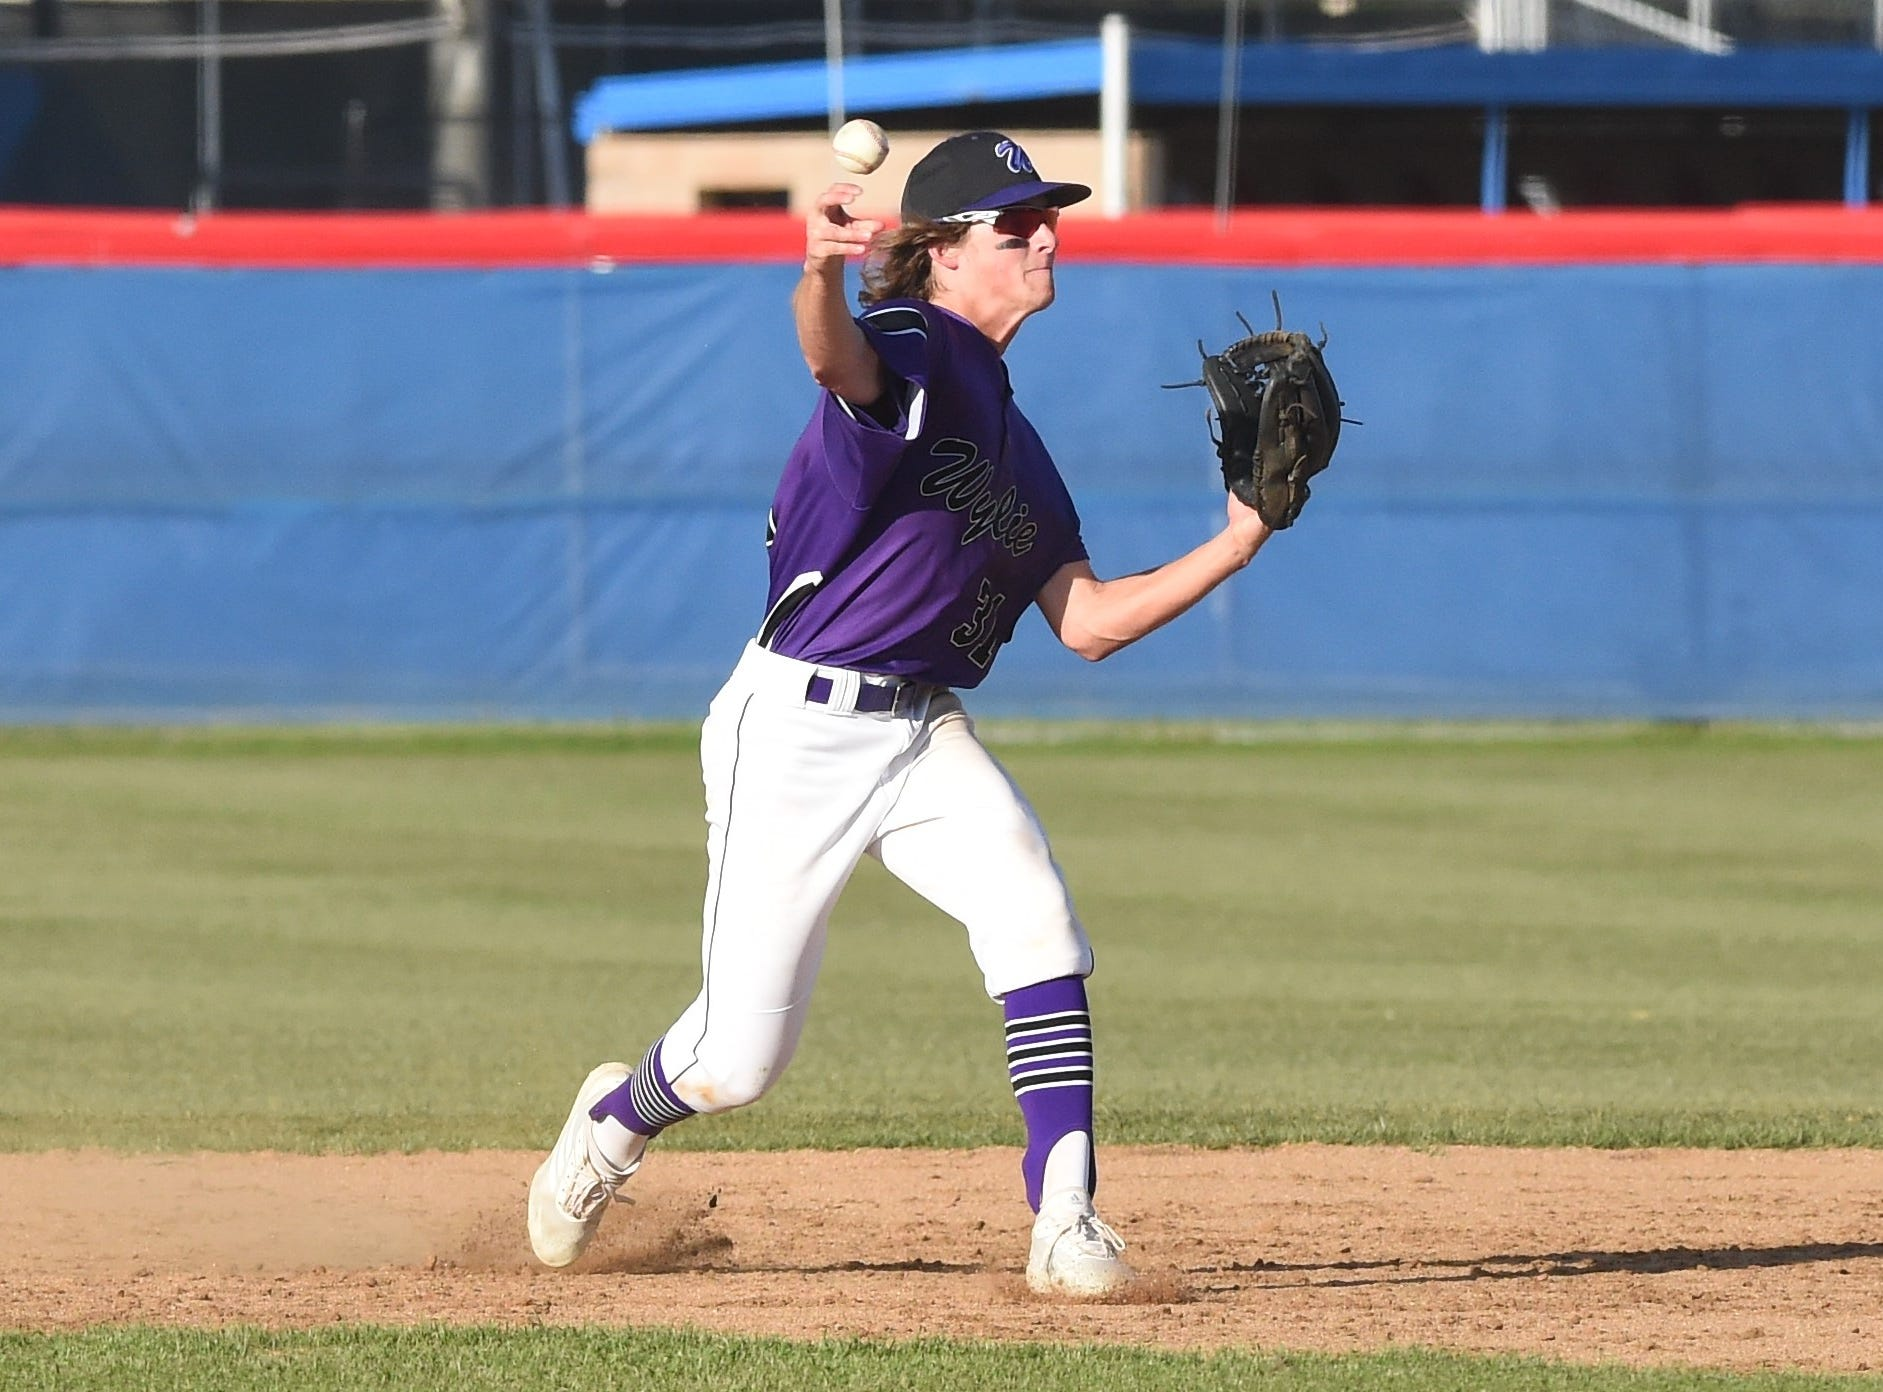 Wylie second baseman Tyler Martin (31) lets go of a throw to first against Cooper at Cougar Field on Tuesday, April 9, 2019. Martin had a hit and two RBIs in the Bulldogs 11-5 win.